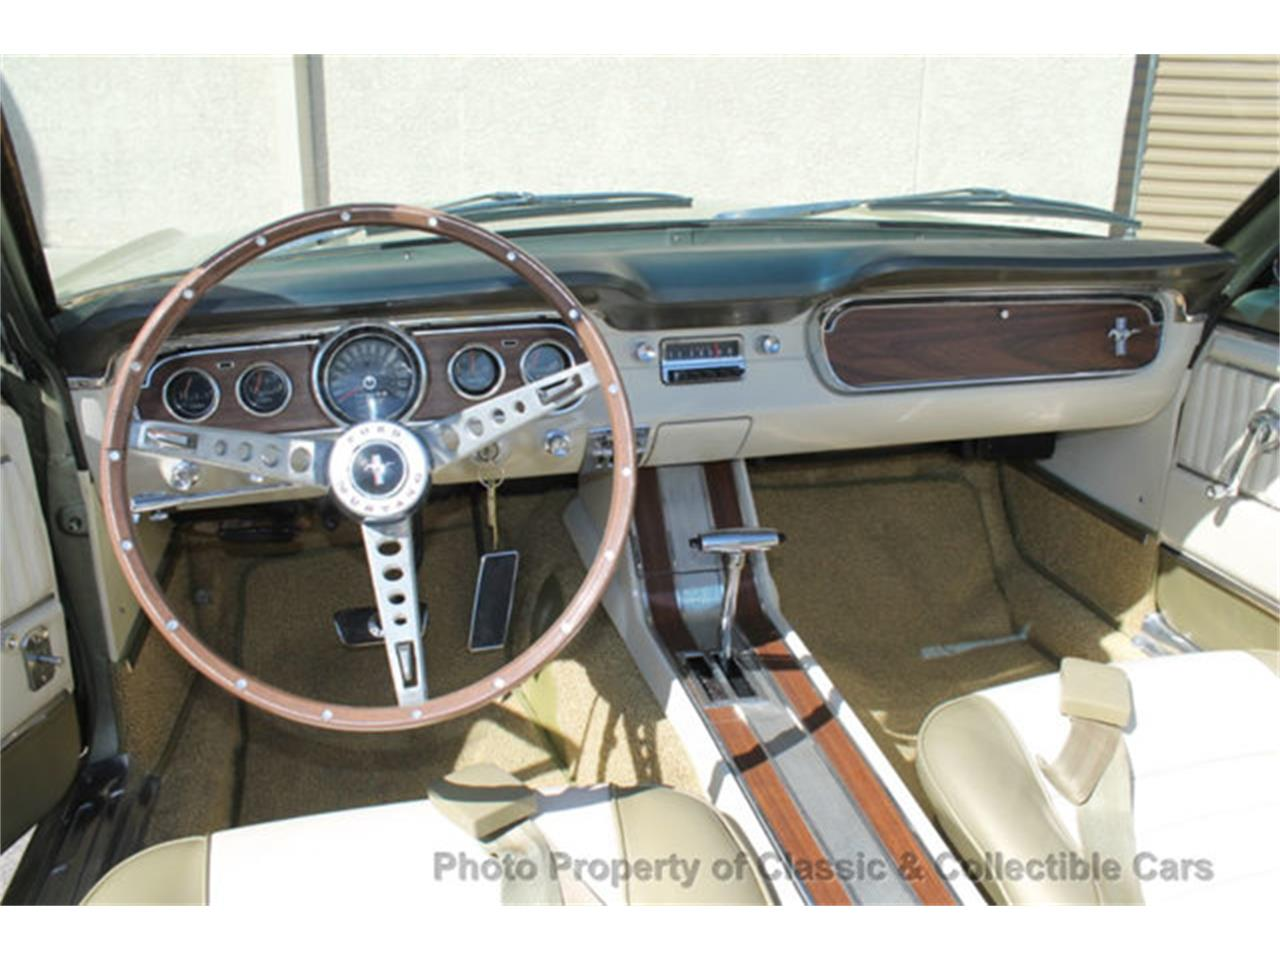 Large Picture of '65 Ford Mustang - $38,500.00 Offered by Classic and Collectible Cars - PULV